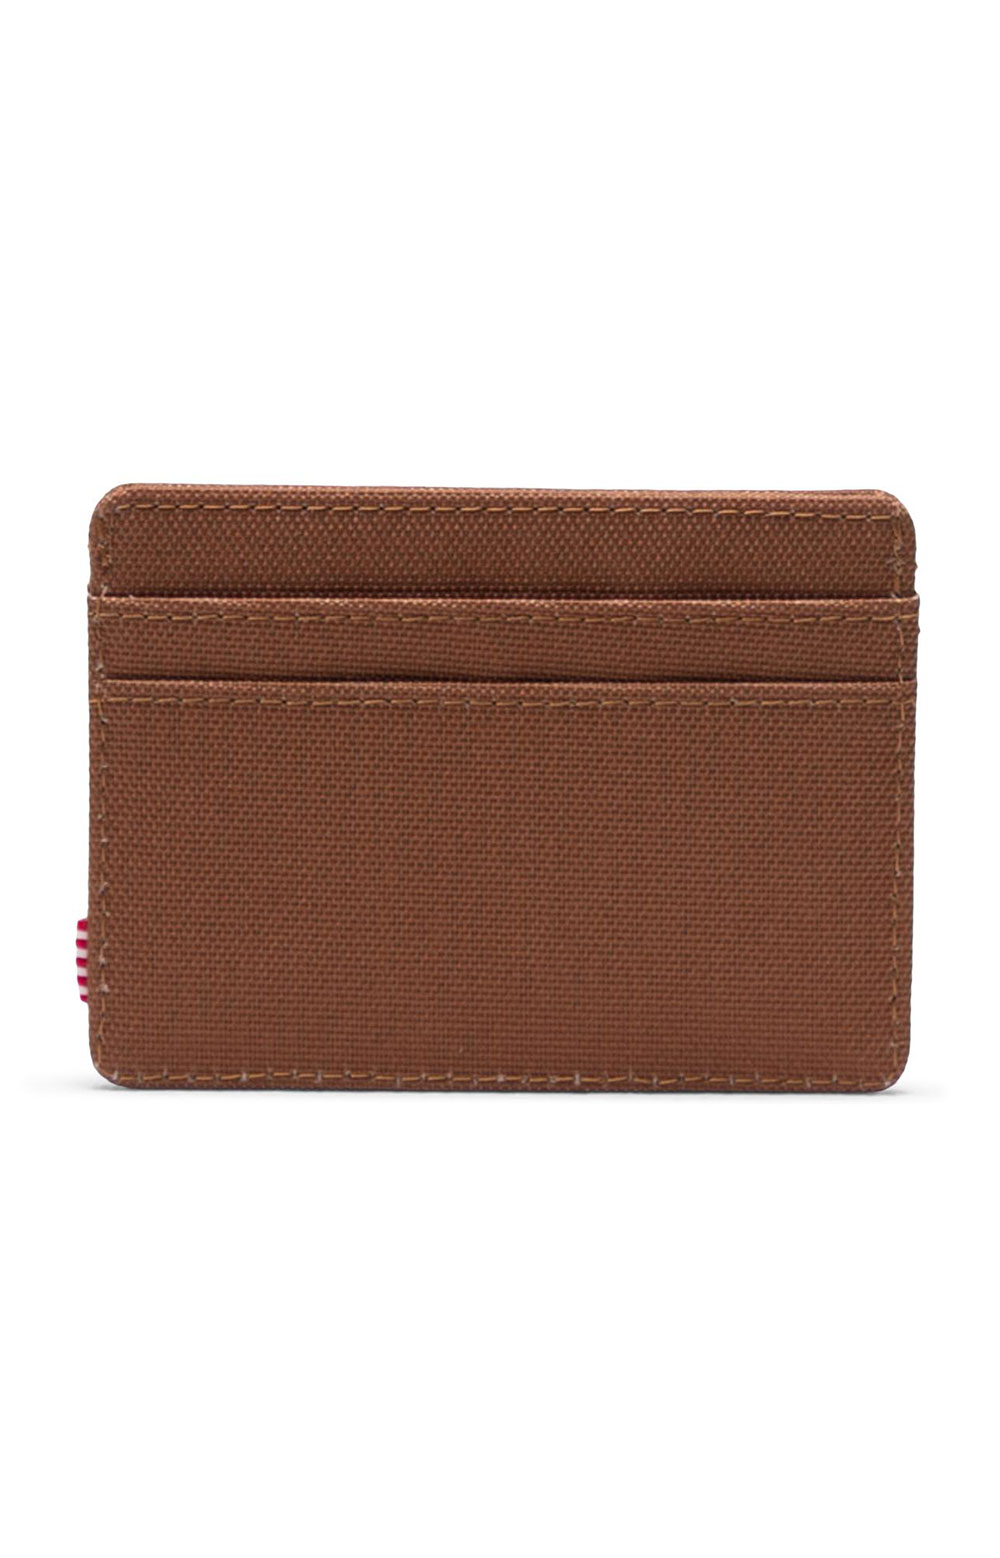 Charlie Wallet - Rubber 3